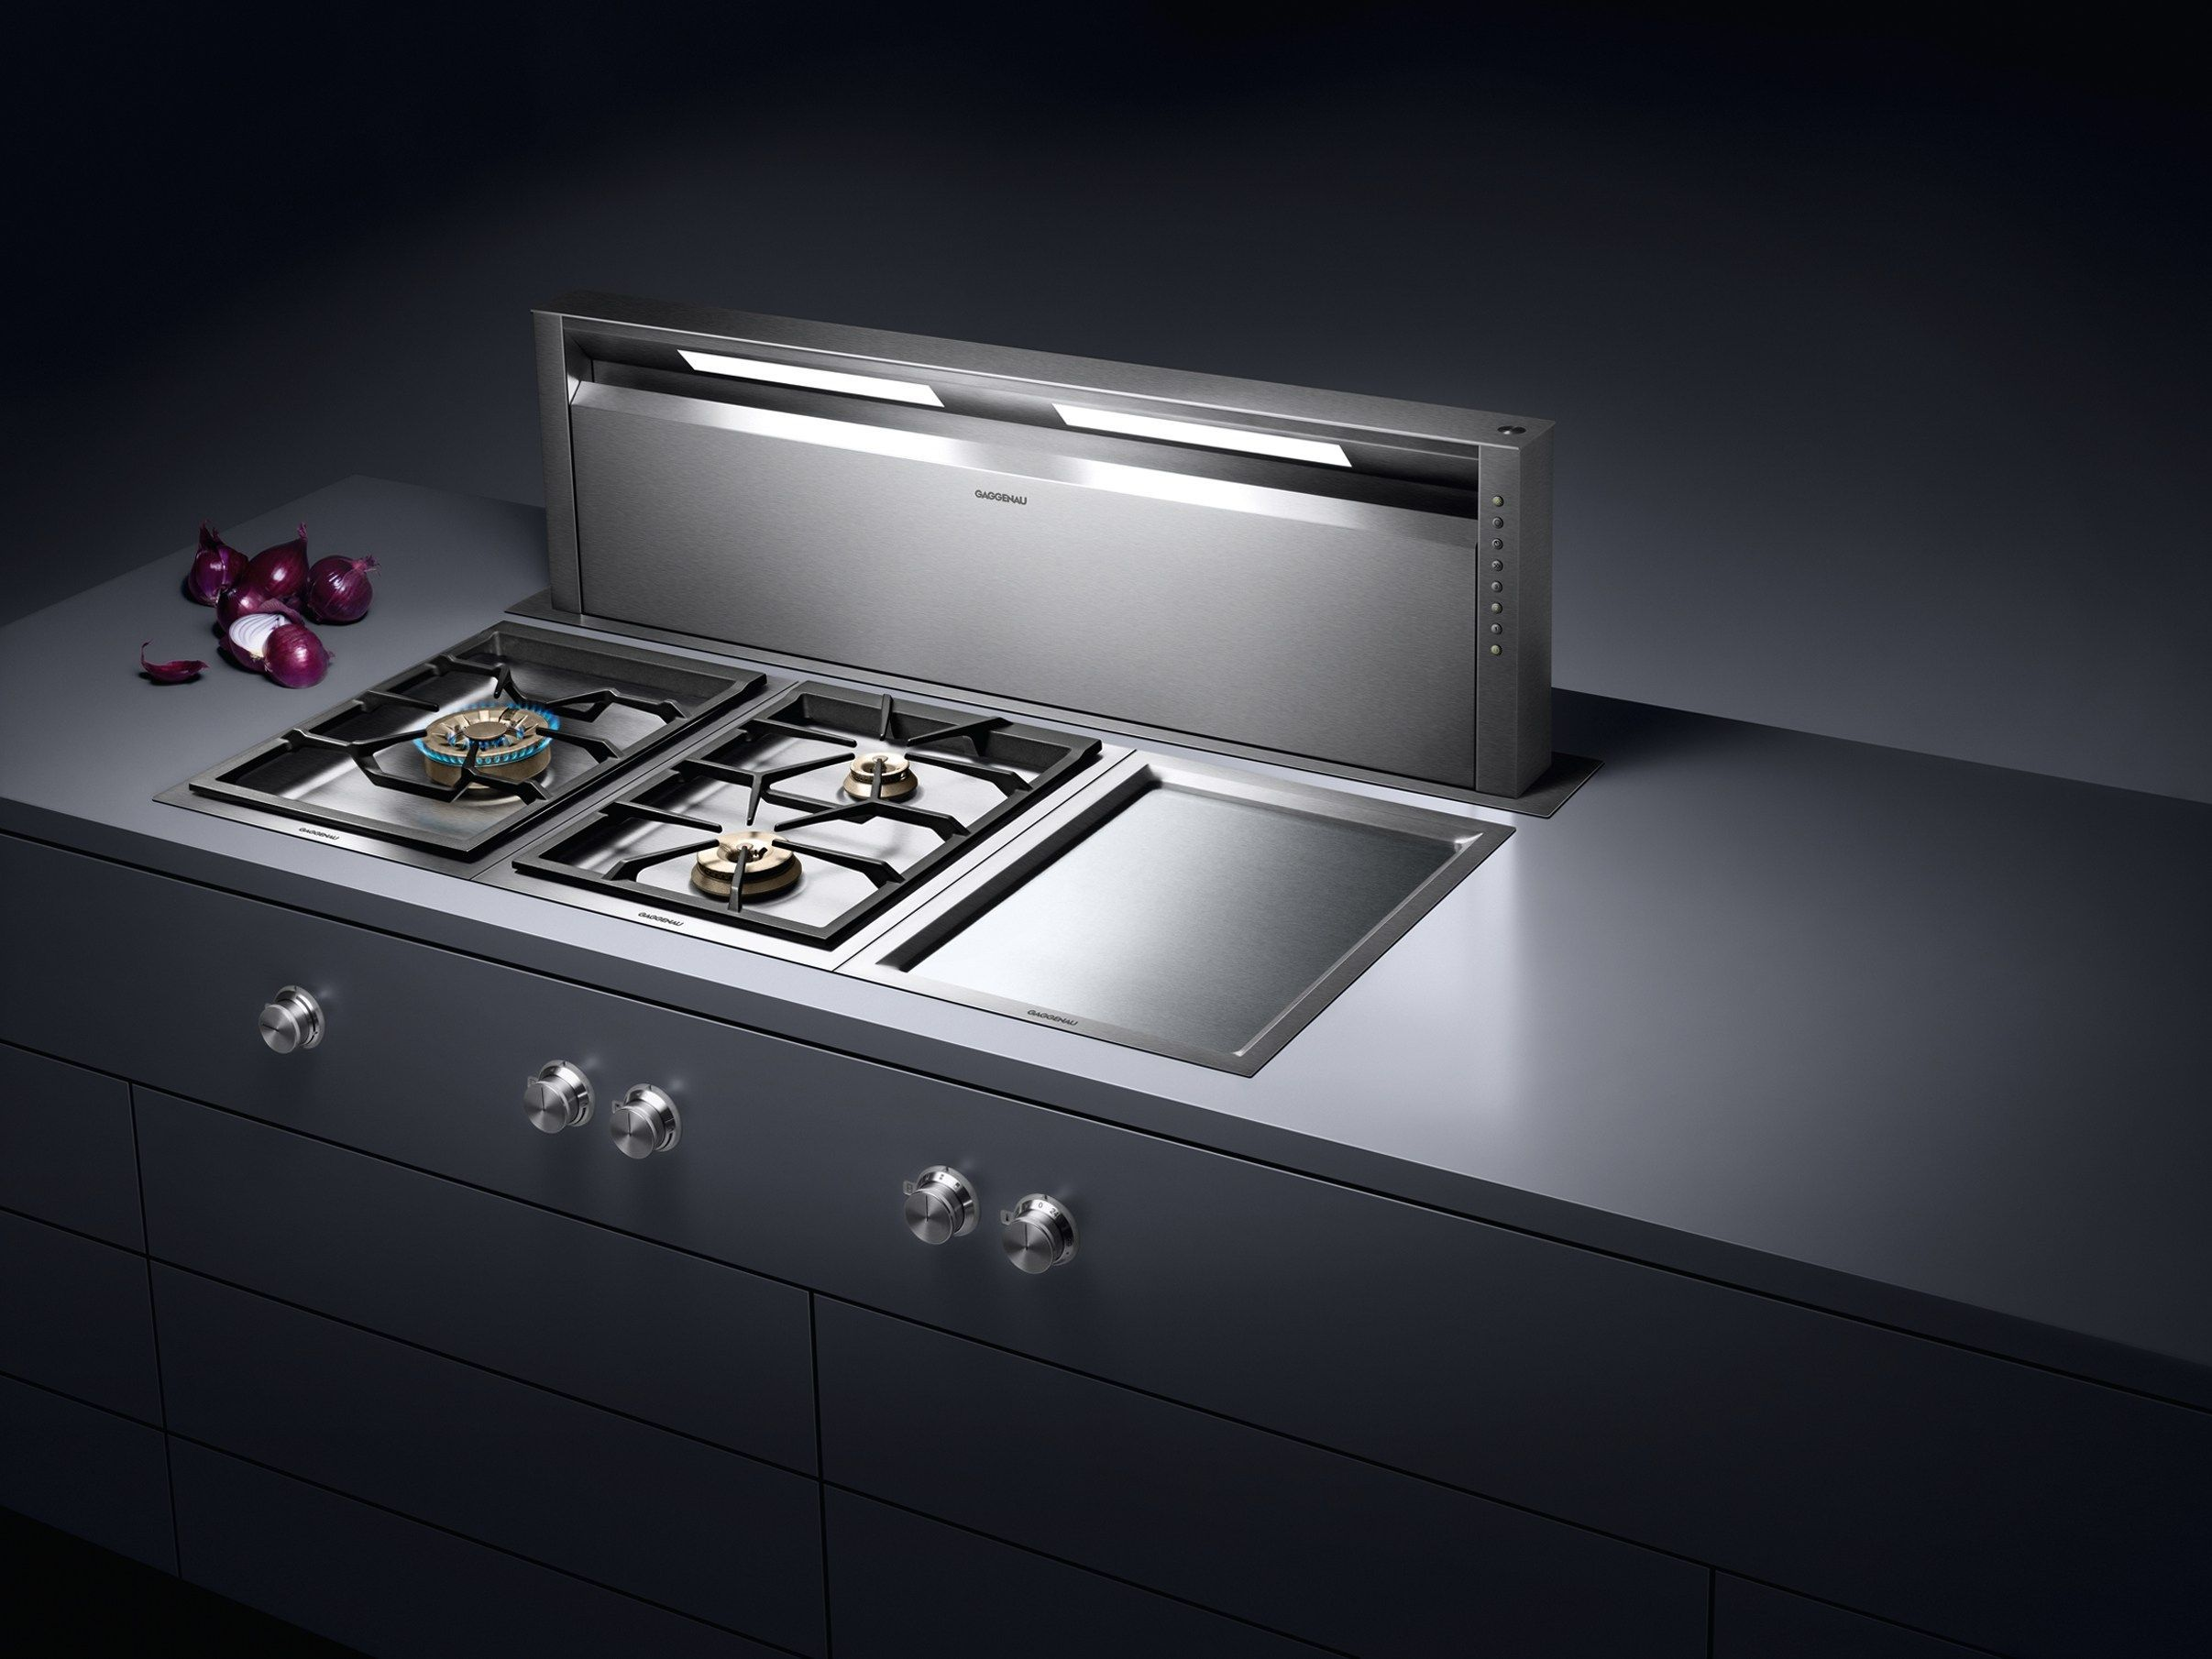 Kitchens Electric Home Campana Extractora Gaggenau Appliances  # Muebles De Cocina Gaggenau